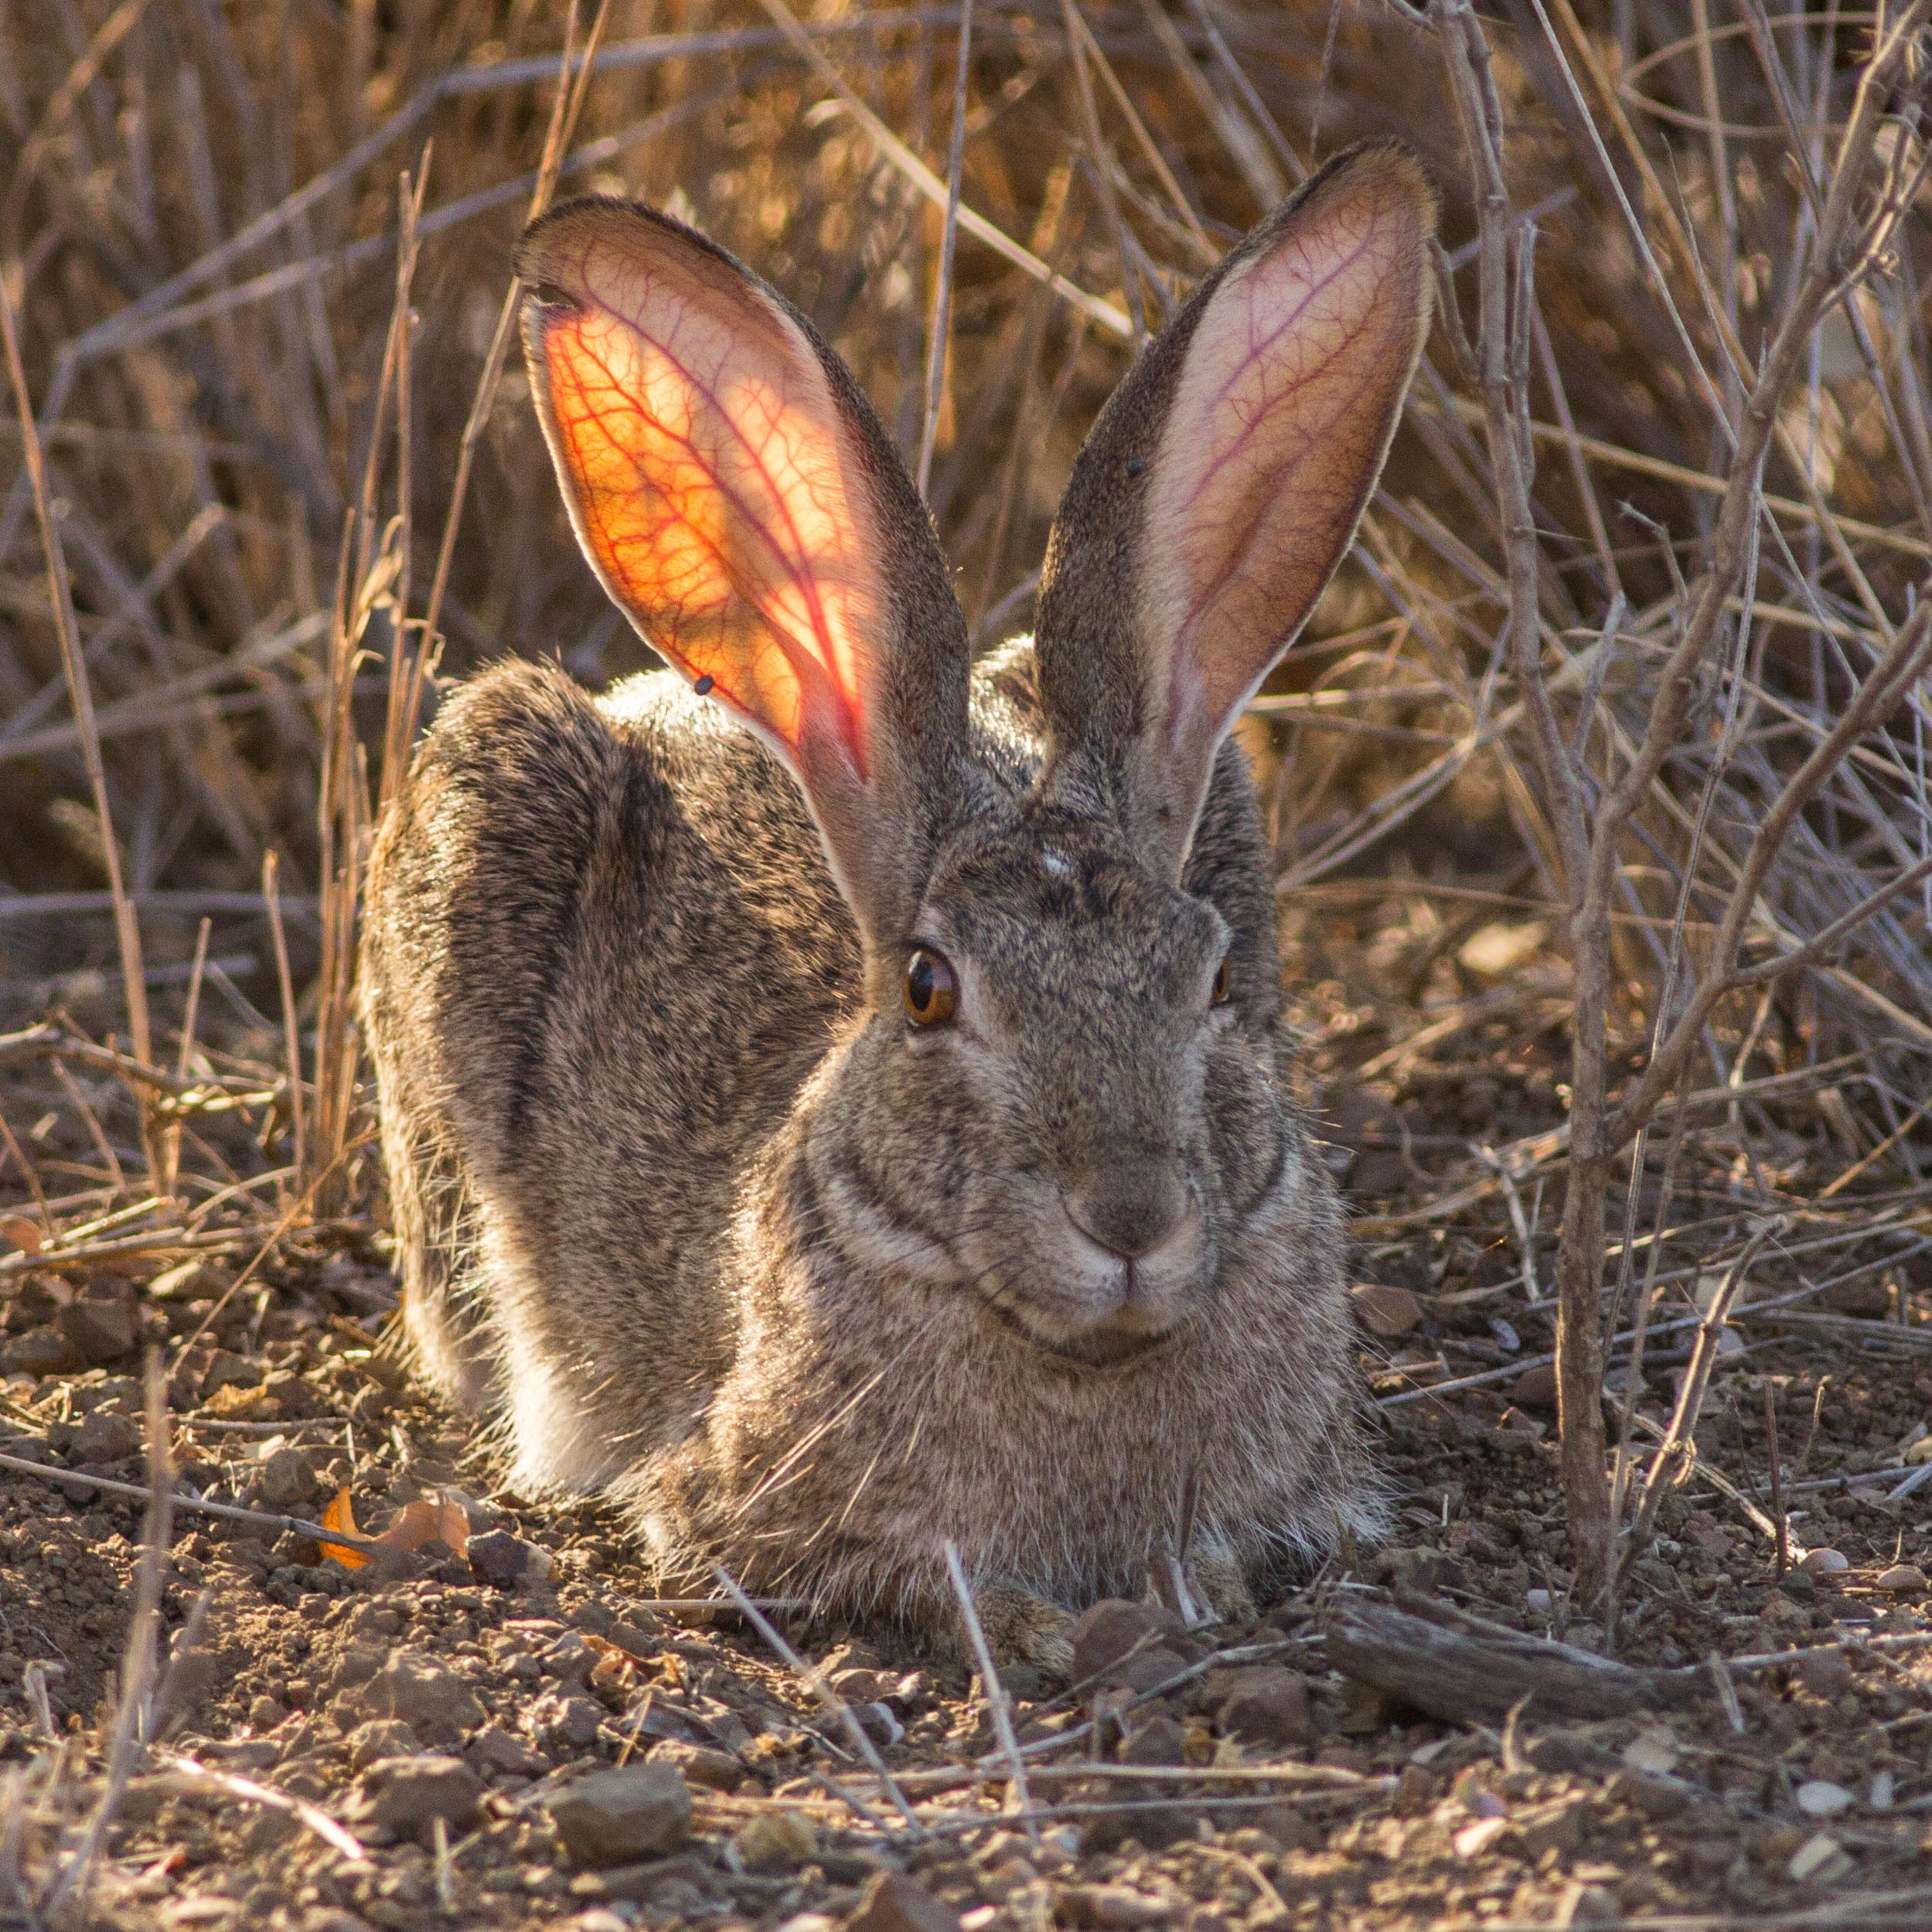 An adult scrub hare rests motionless in broad daylight.